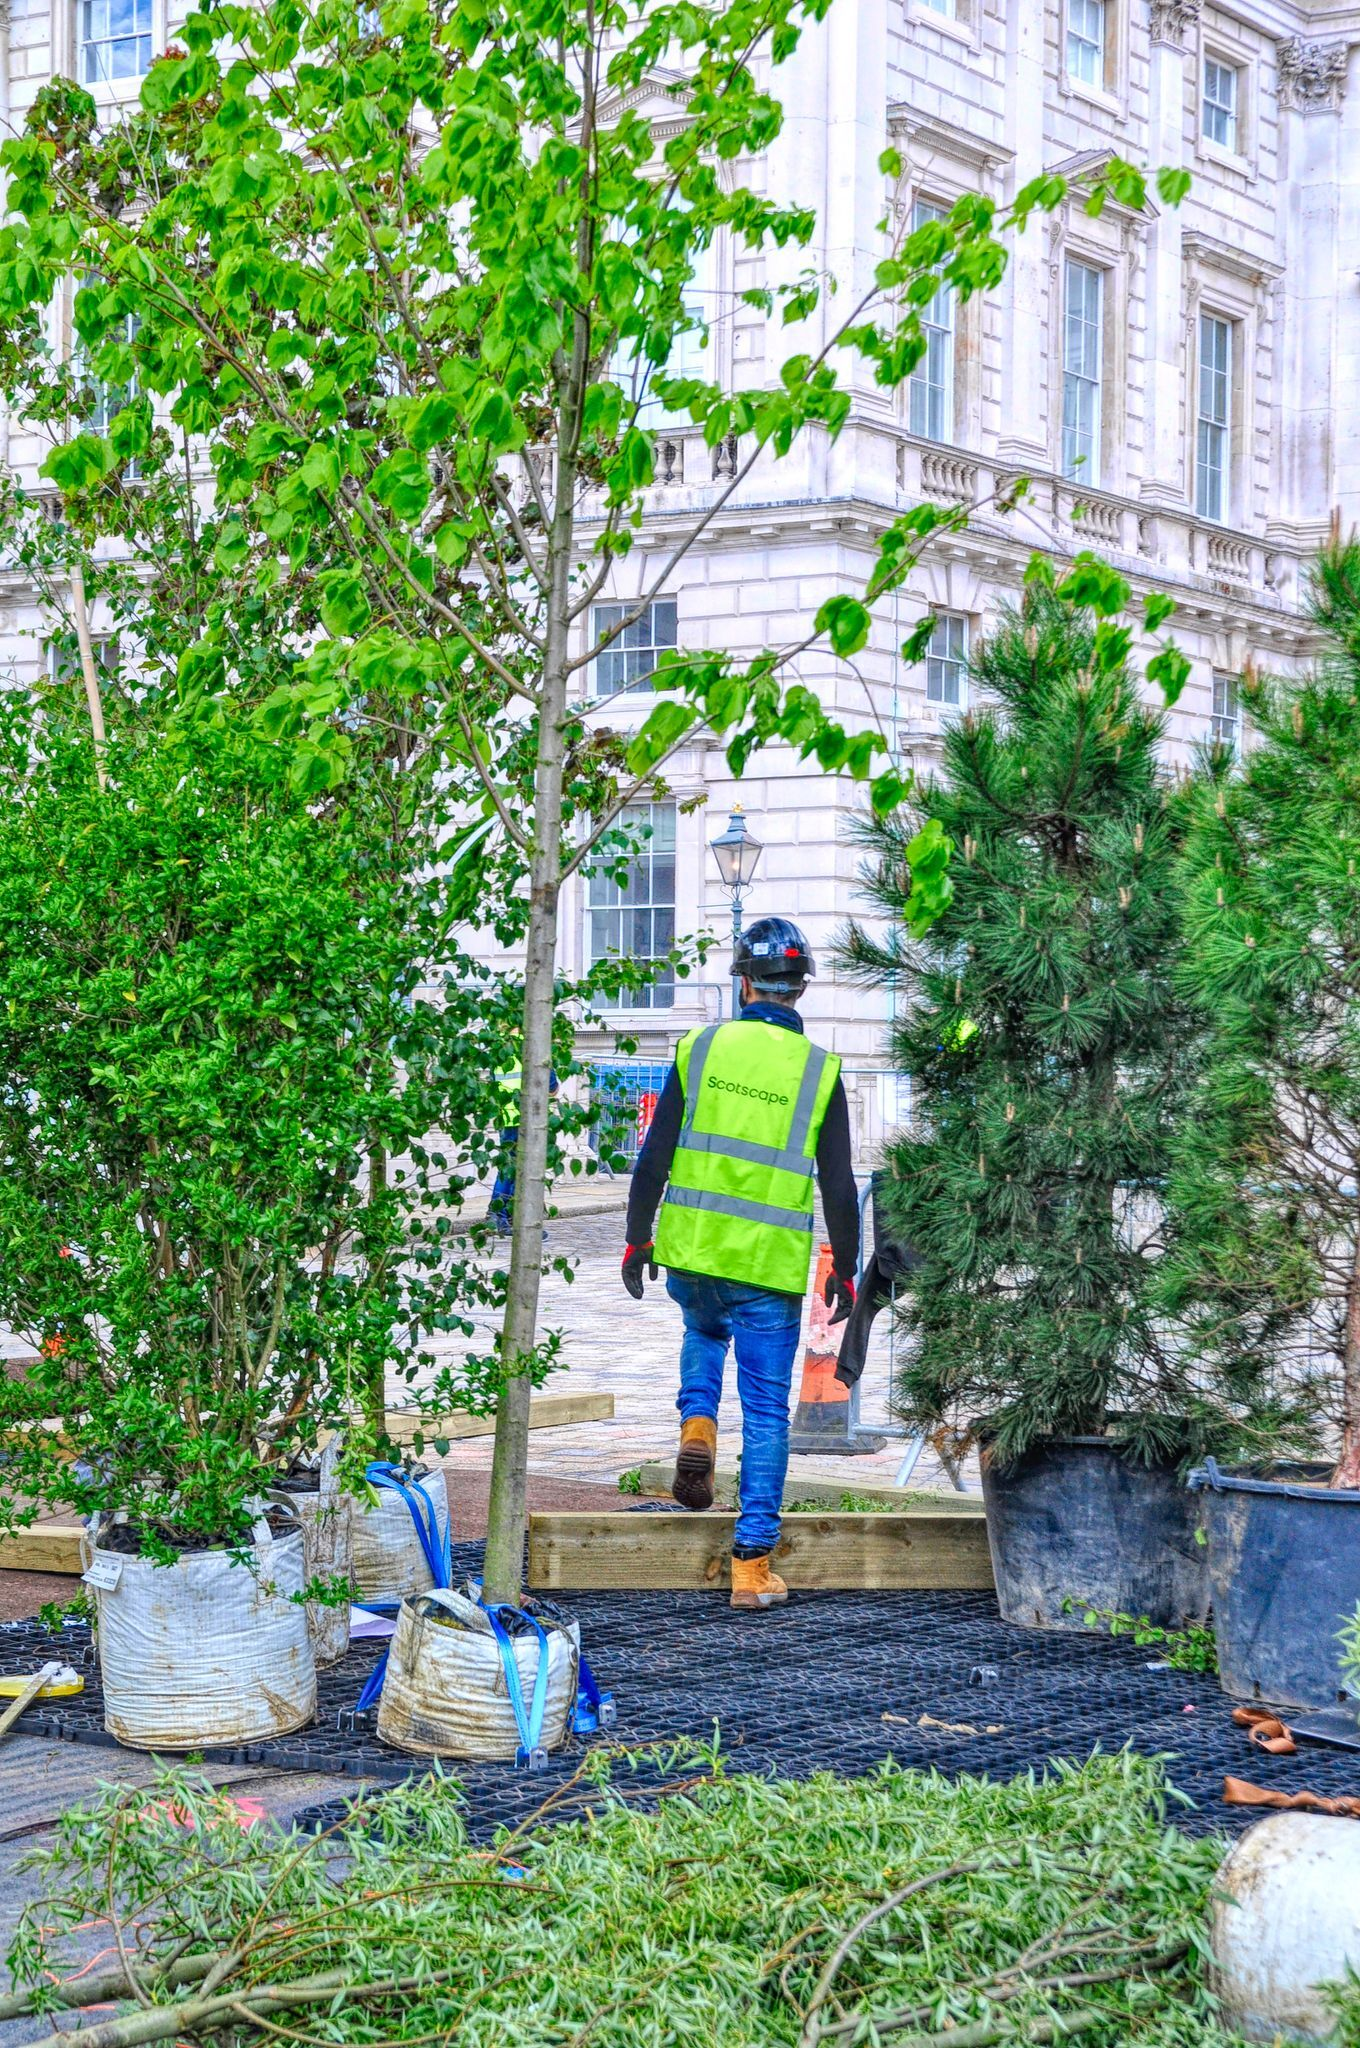 Installation of Forest For Change at the London Design Biennale